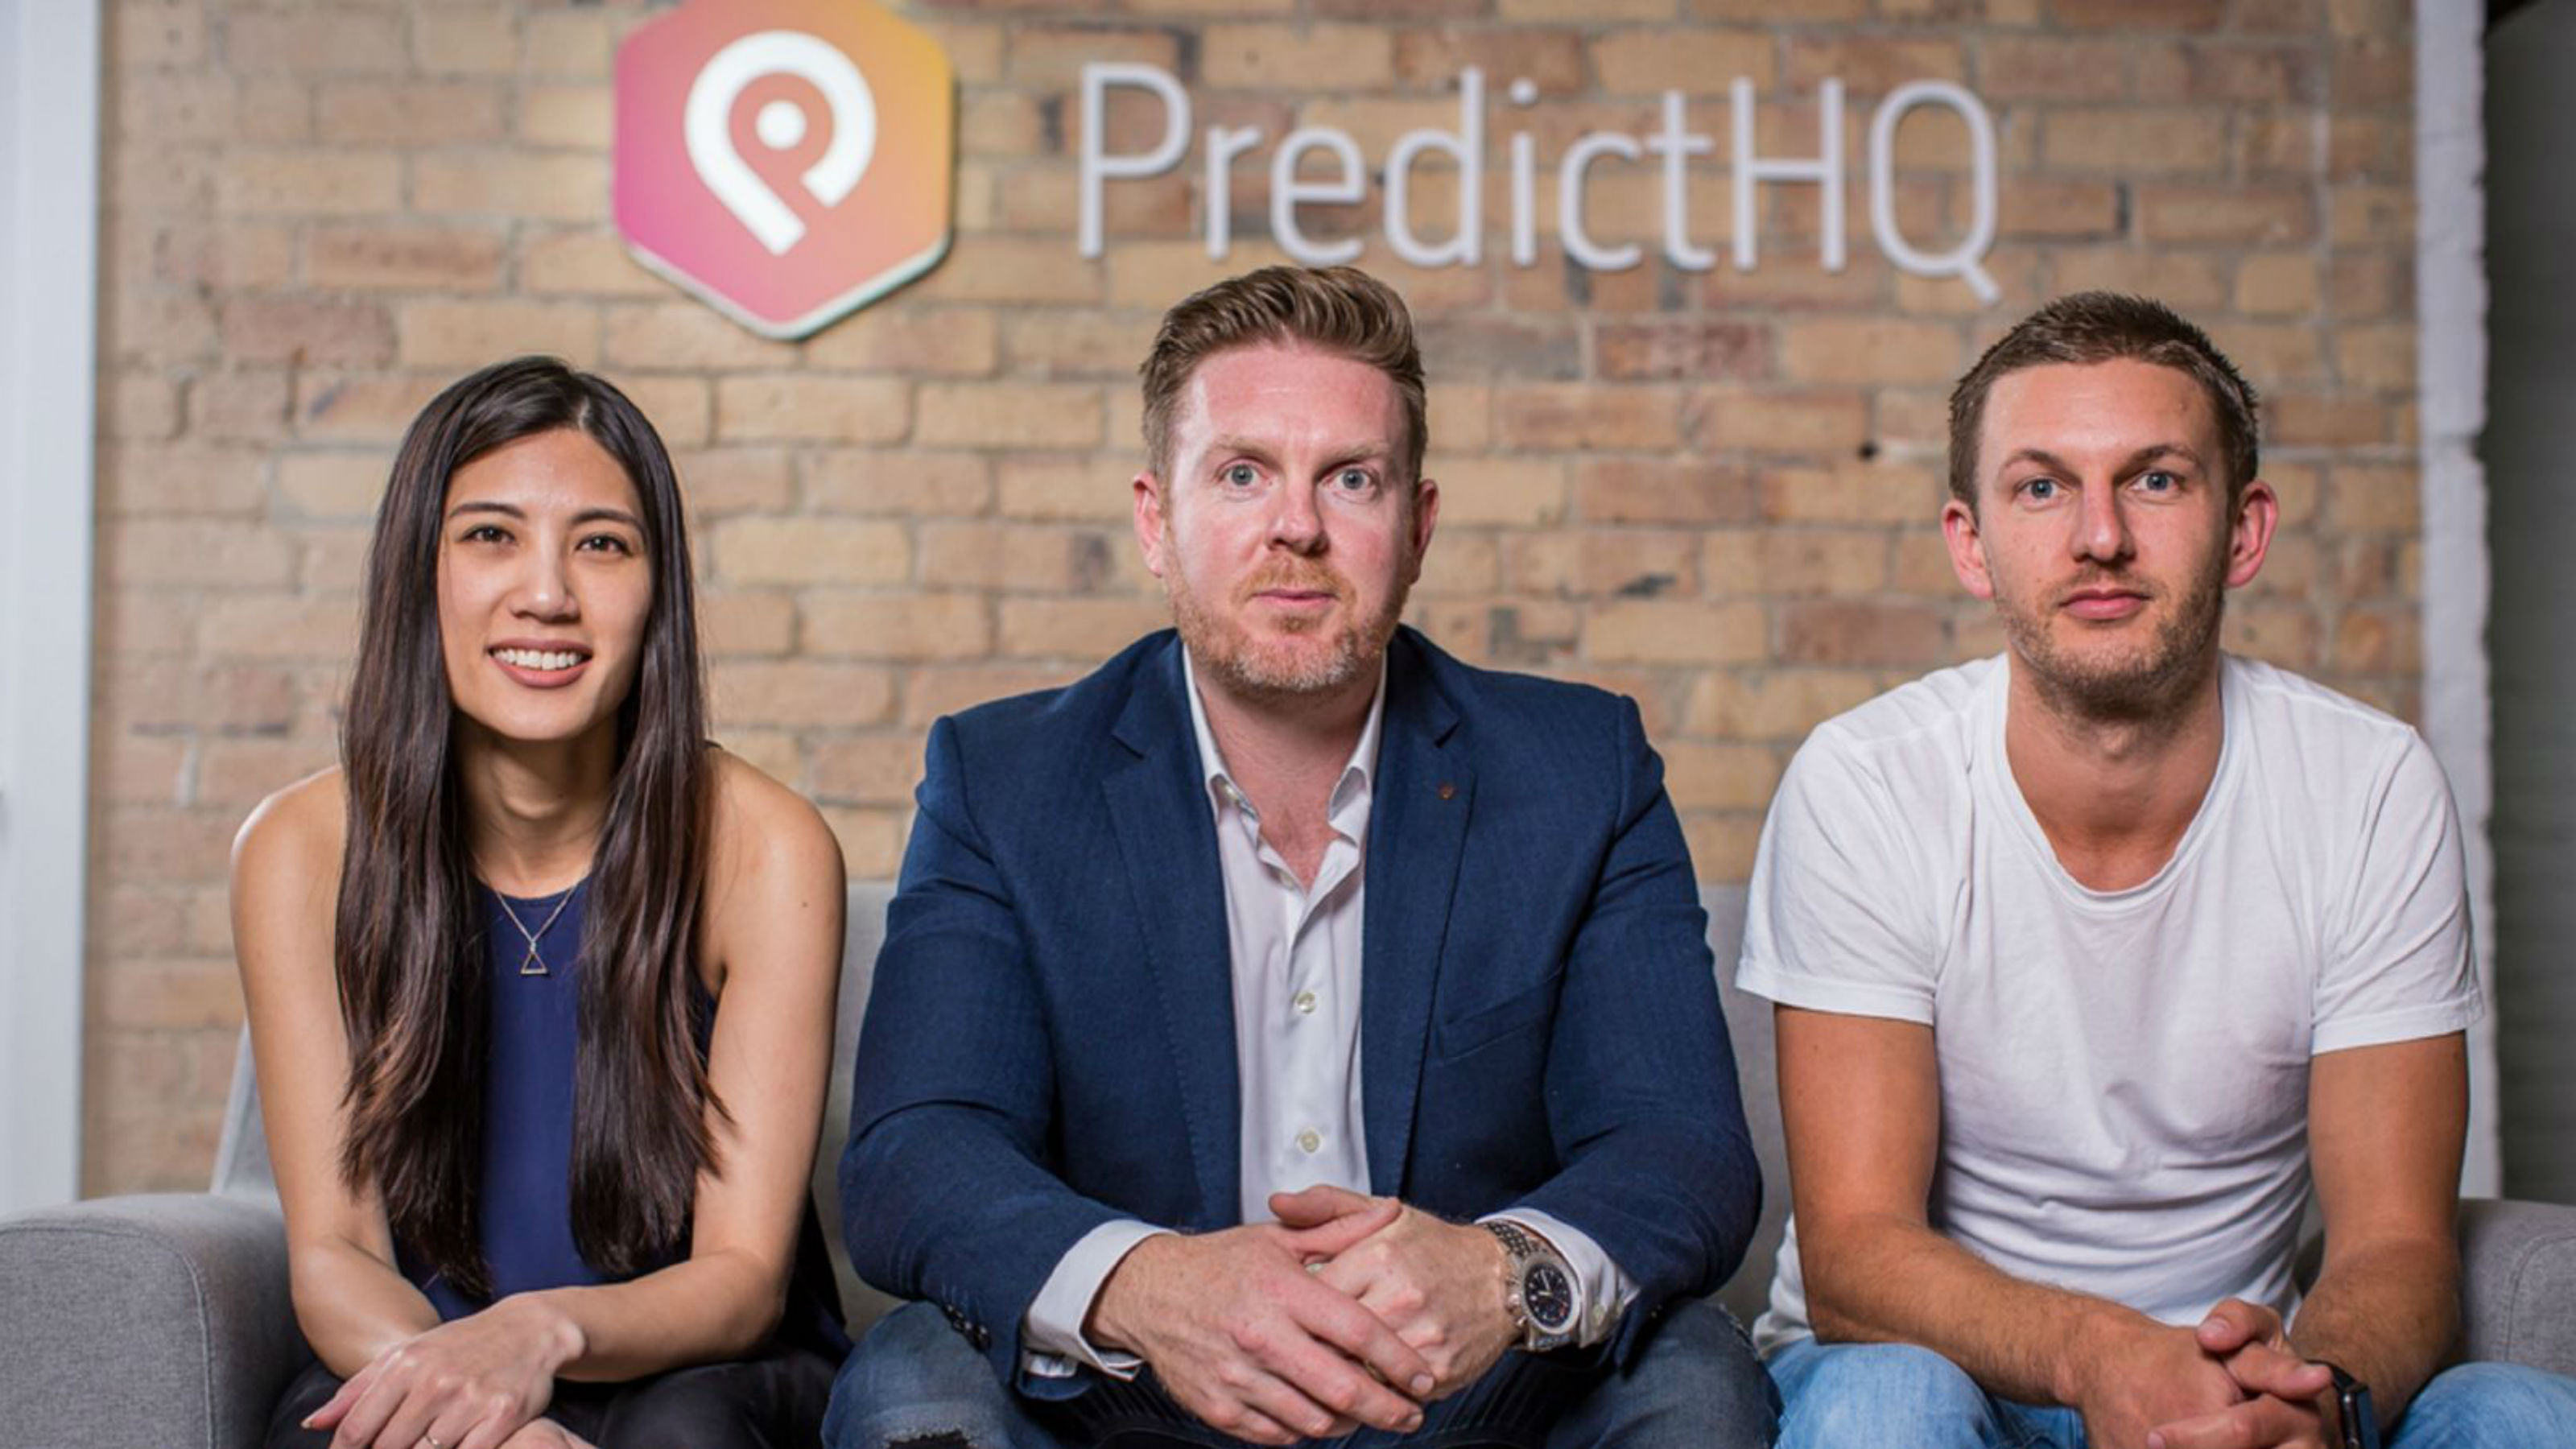 Yen Lim, Campbell Brown and Rob Kern sit next to each other on a sofa with a brick wall, company logo and words 'PredictHQ' behind them.